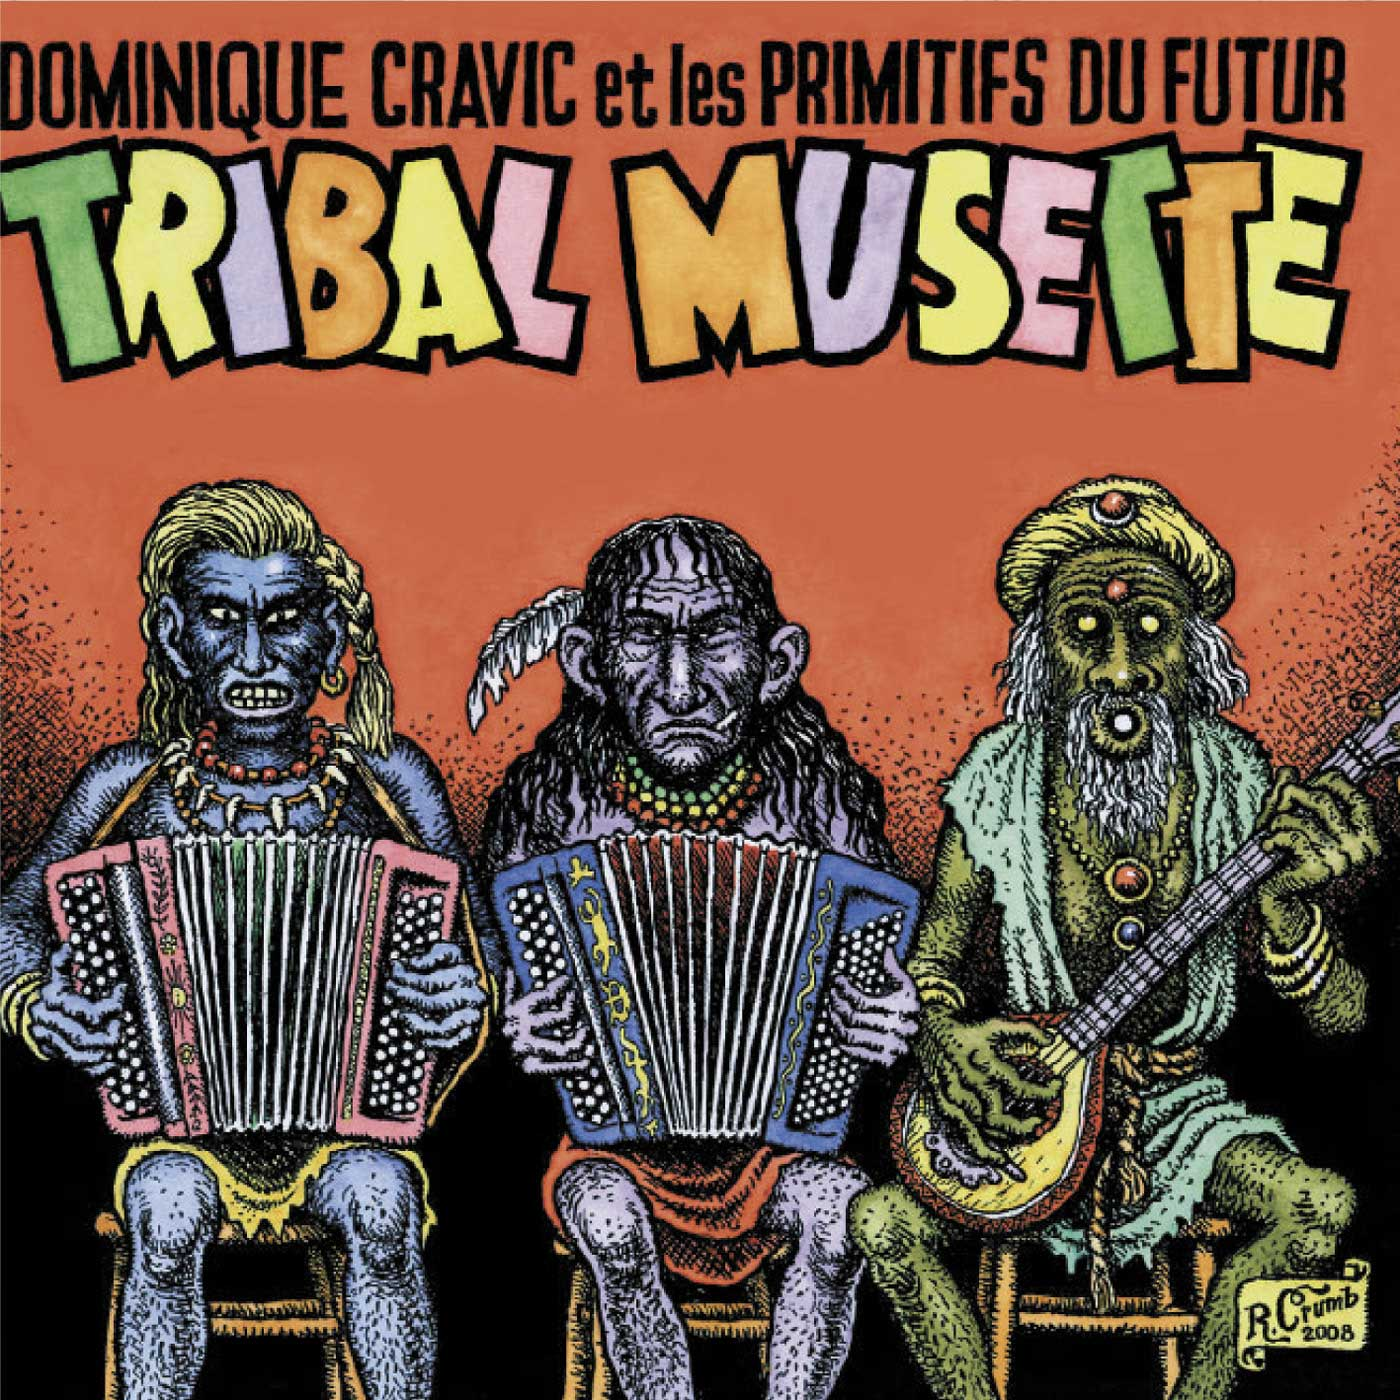 Tribal Musette by Les Primitifs Du Futur cover